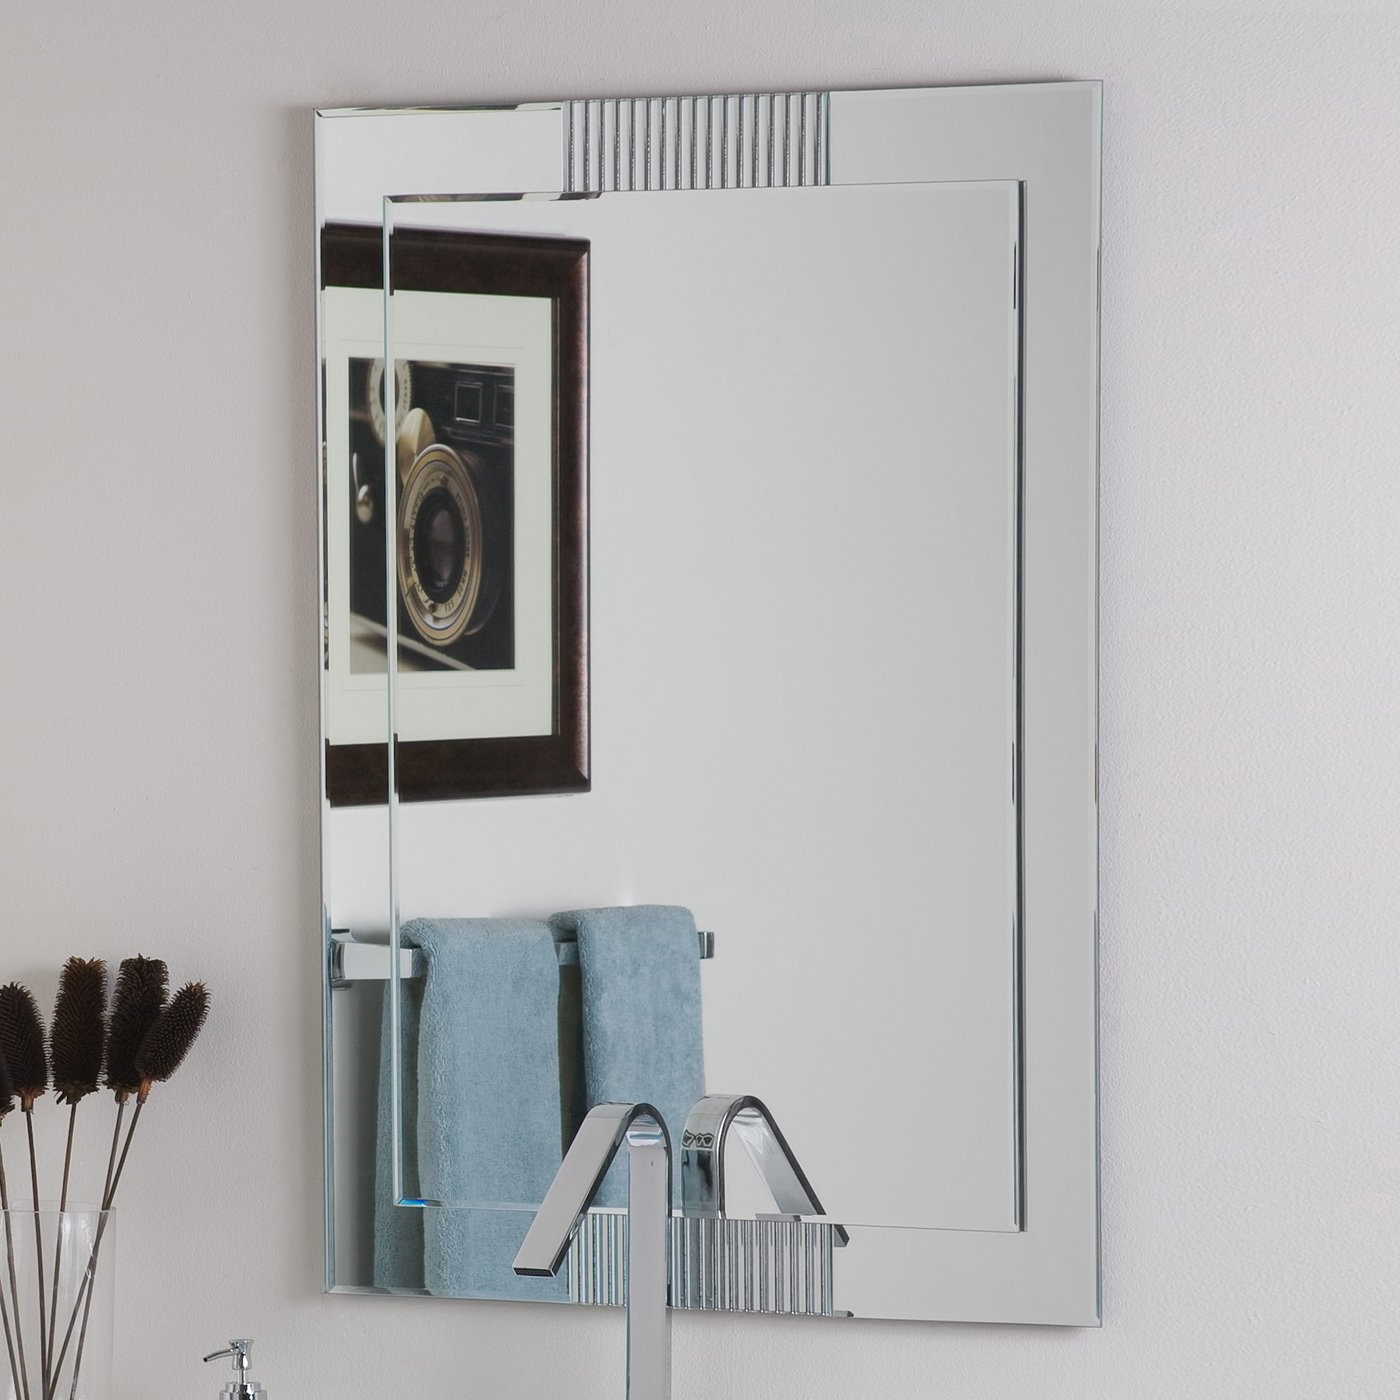 Decor Wonderland Ssm526 Francisca Large Frameless Wall Mirror With Regard To Well Liked Frameless Wall Mirrors (View 14 of 20)